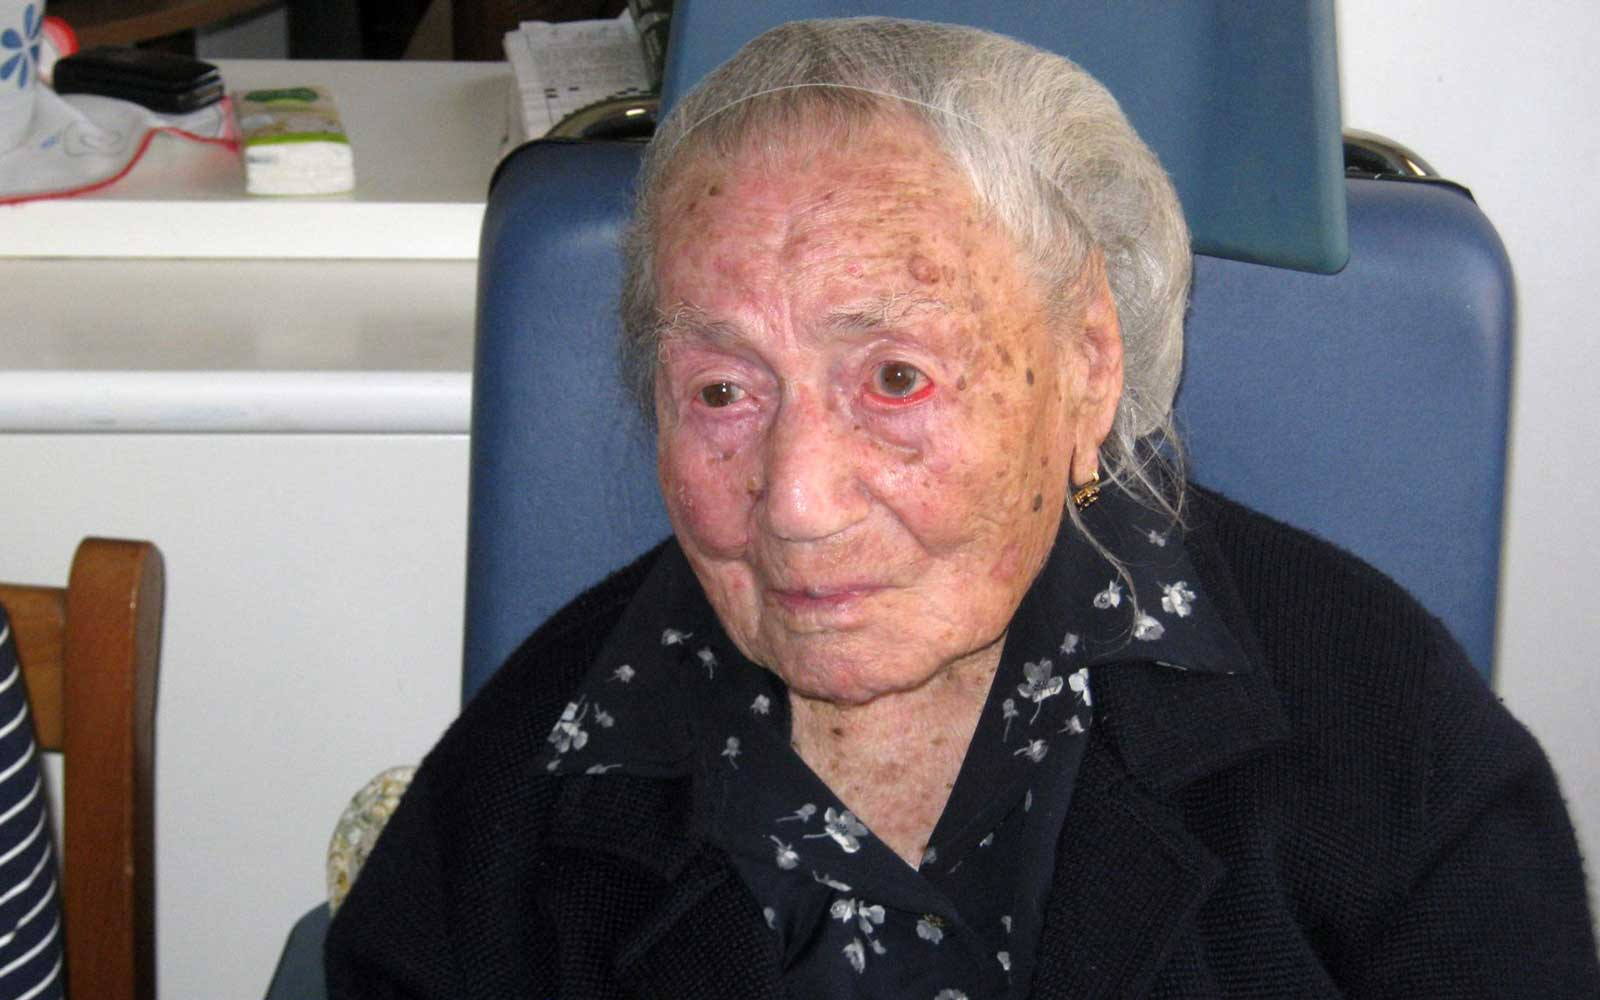 Giuseppina Projetto-Frau (30 May 1902 – 6 July 2018) was a validated Italian supercentenarian